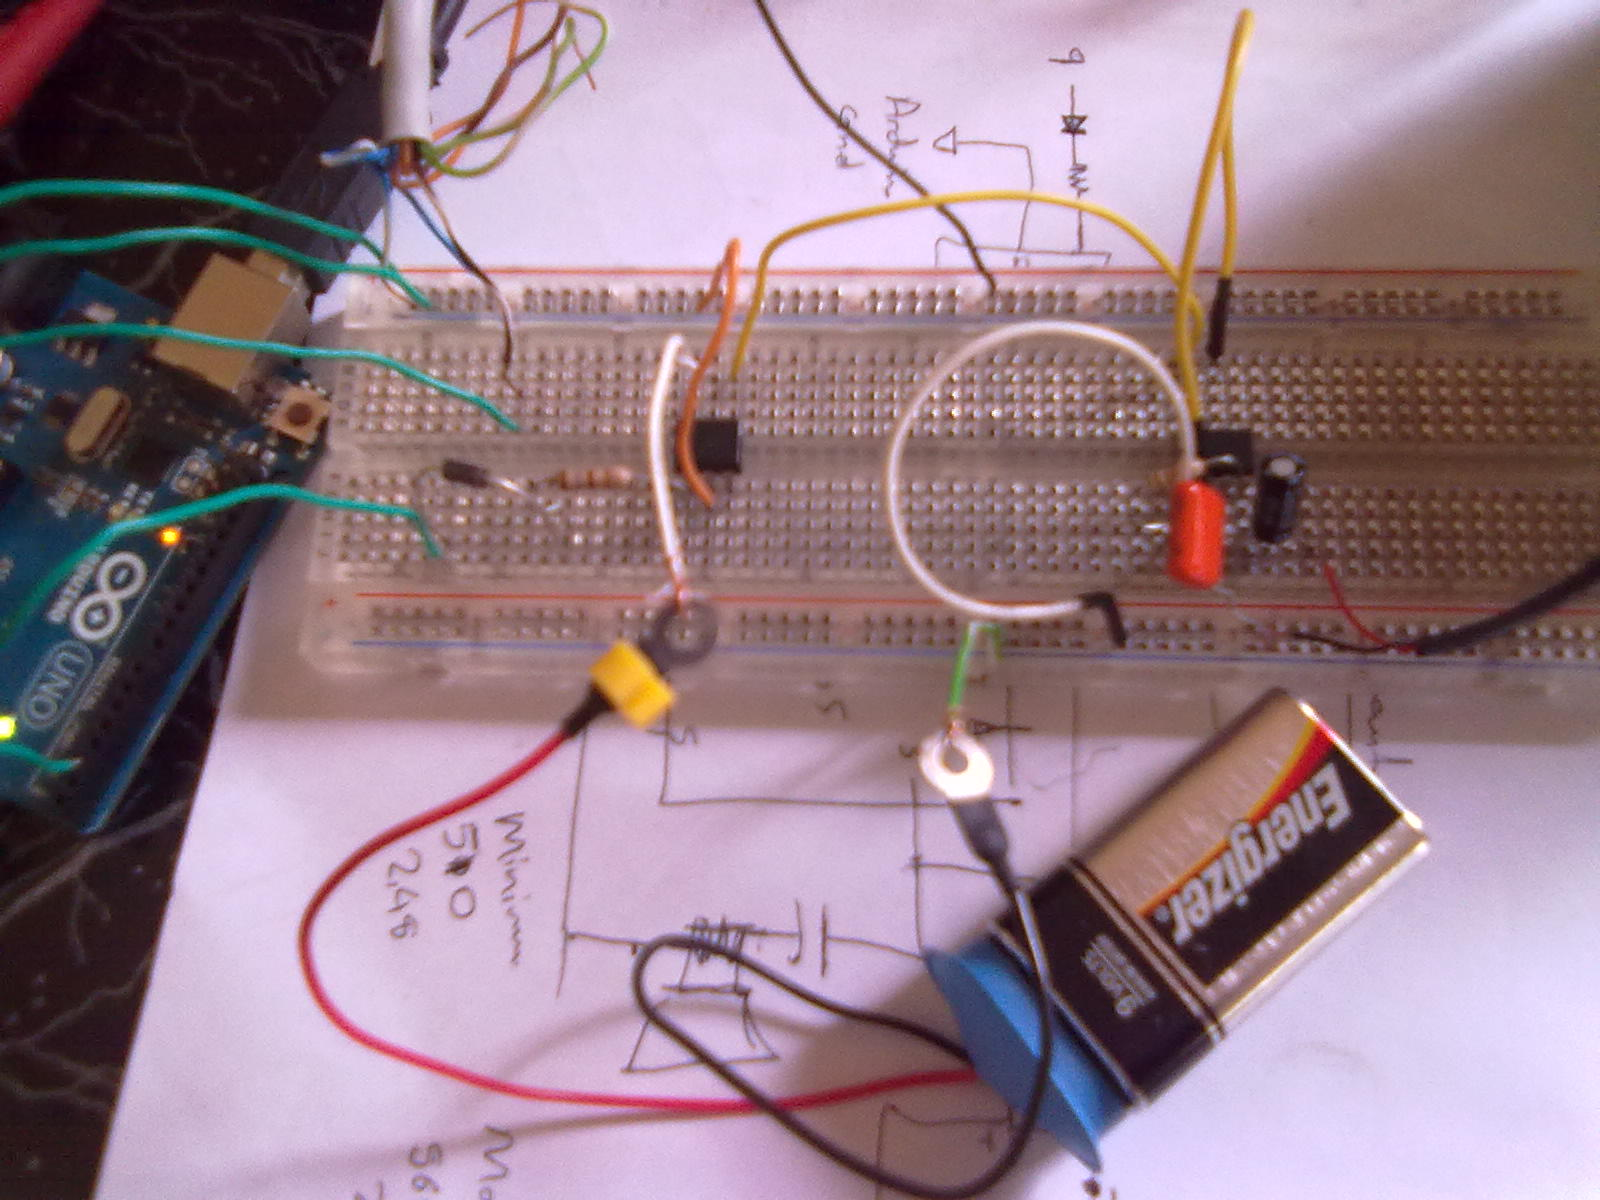 DIY: Door Alarm System using the Arduino Uno